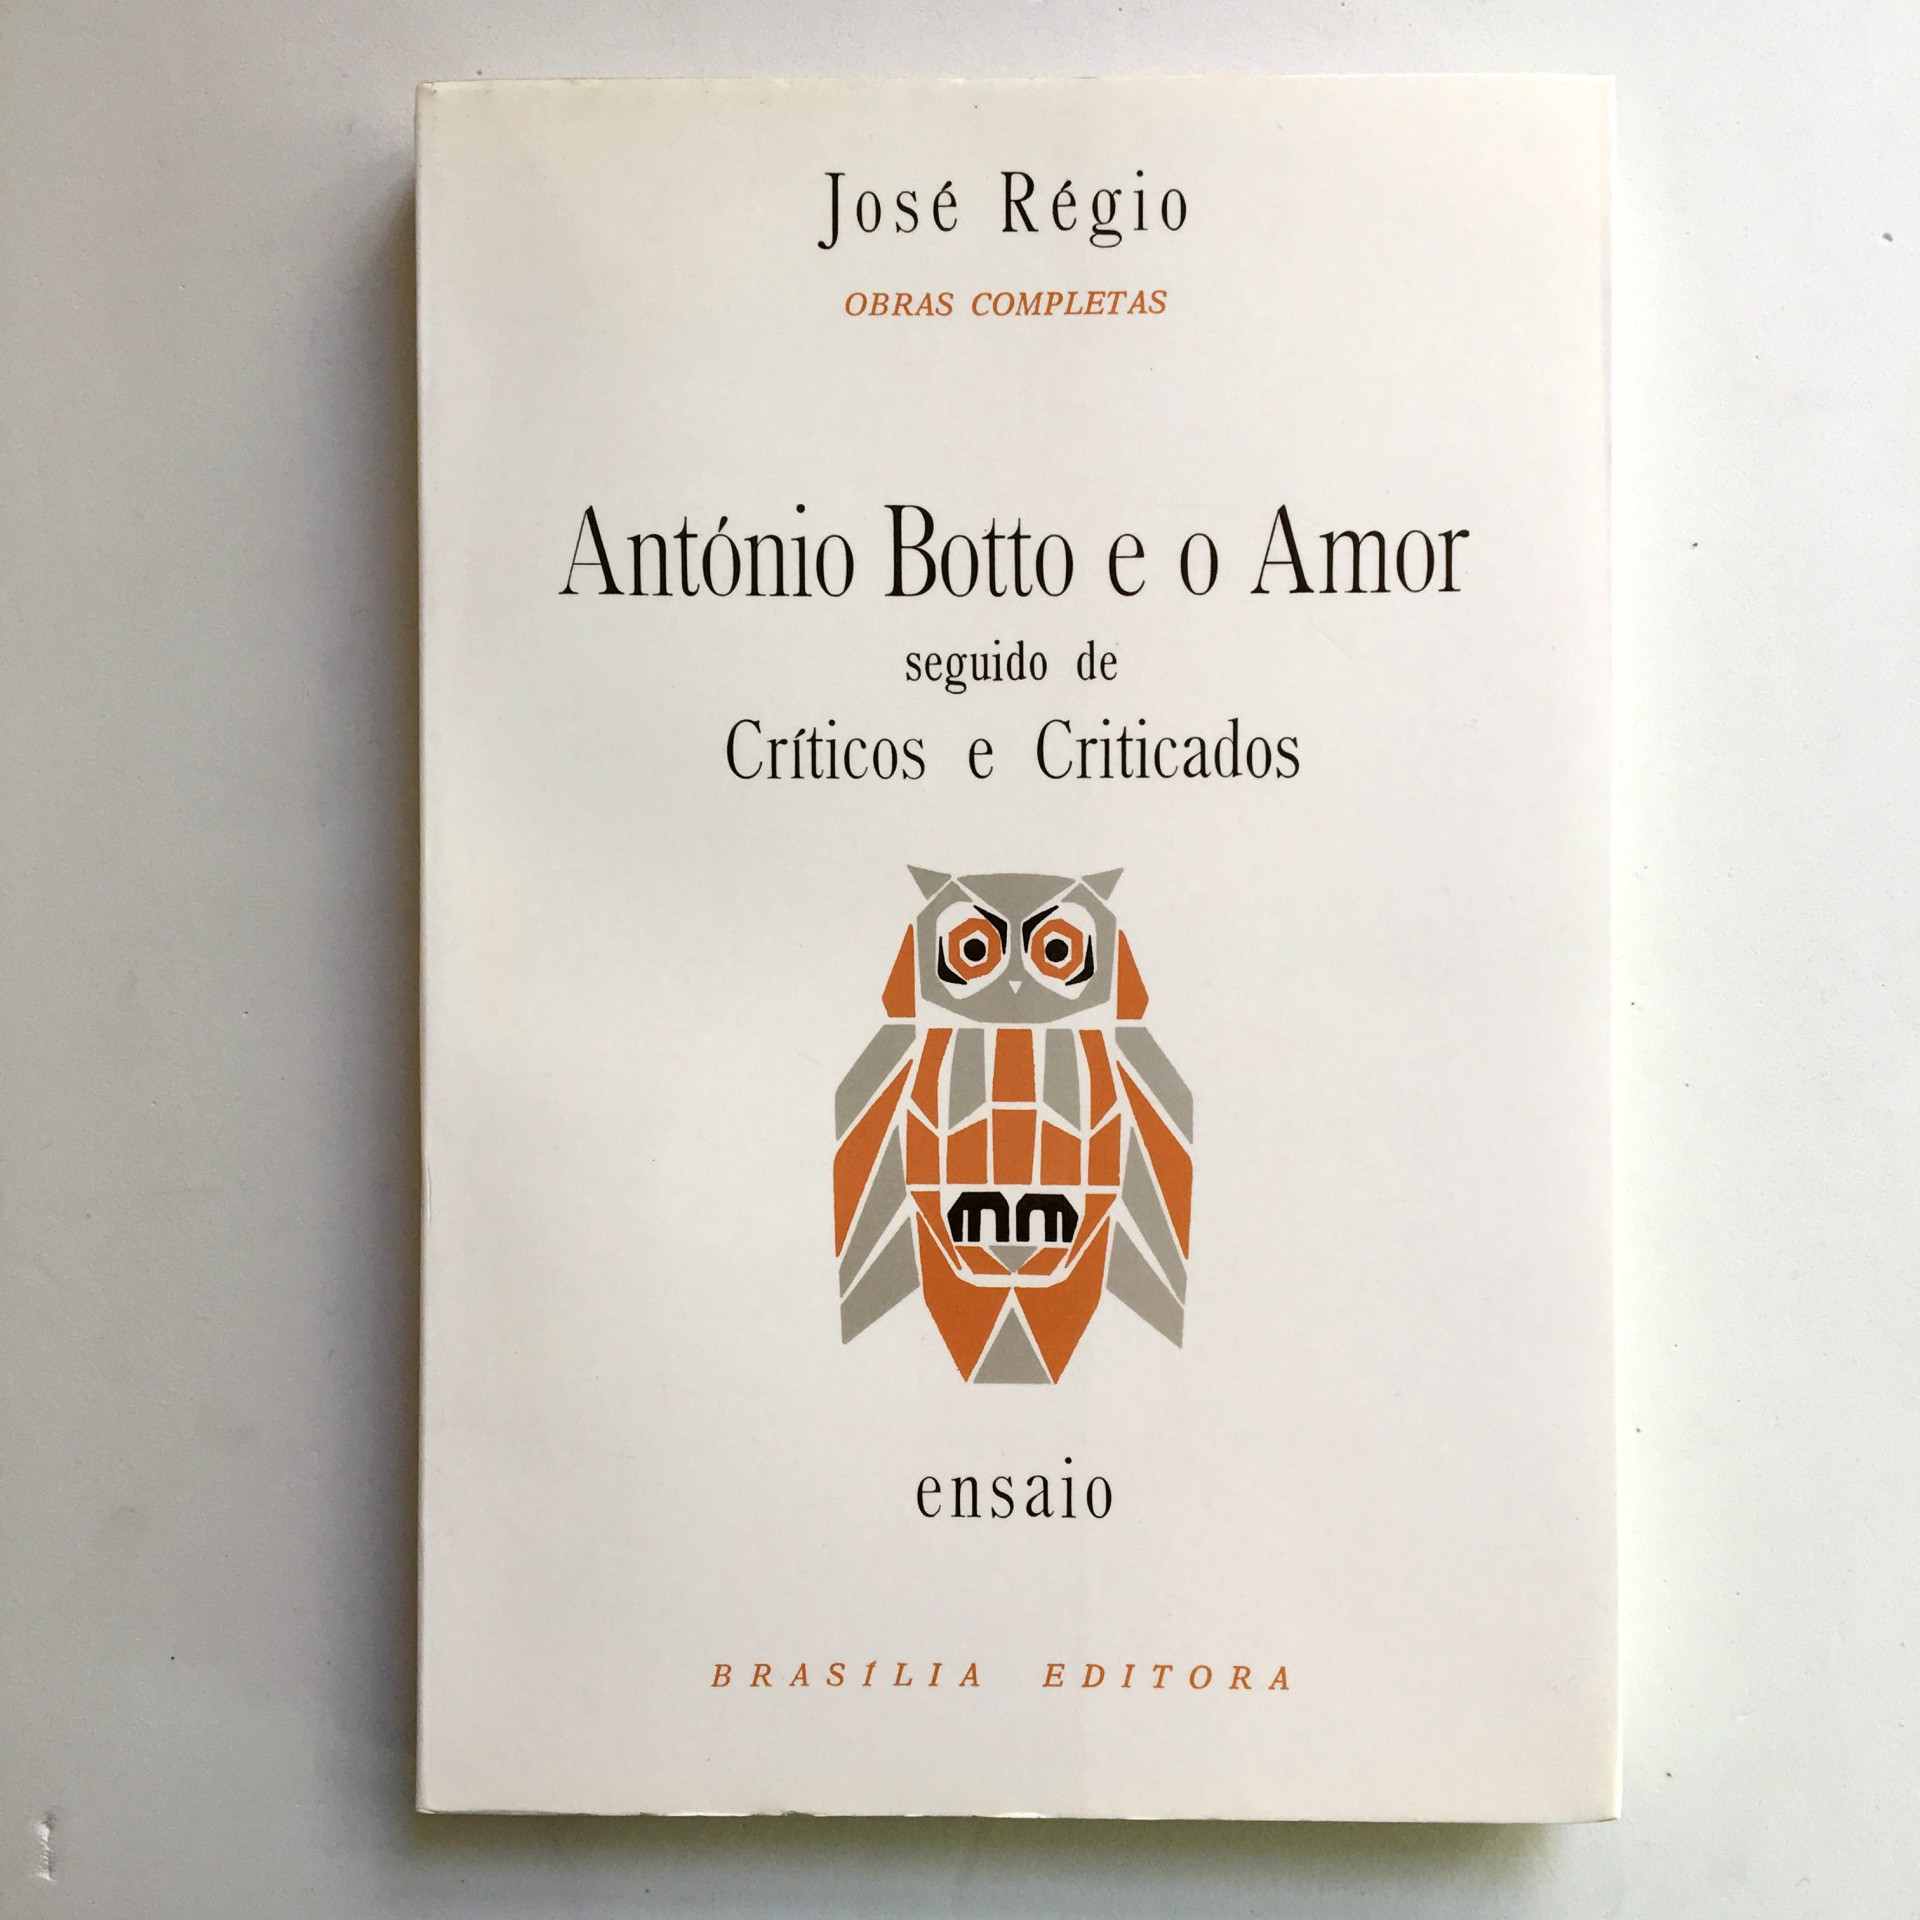 António Botto e o Amor